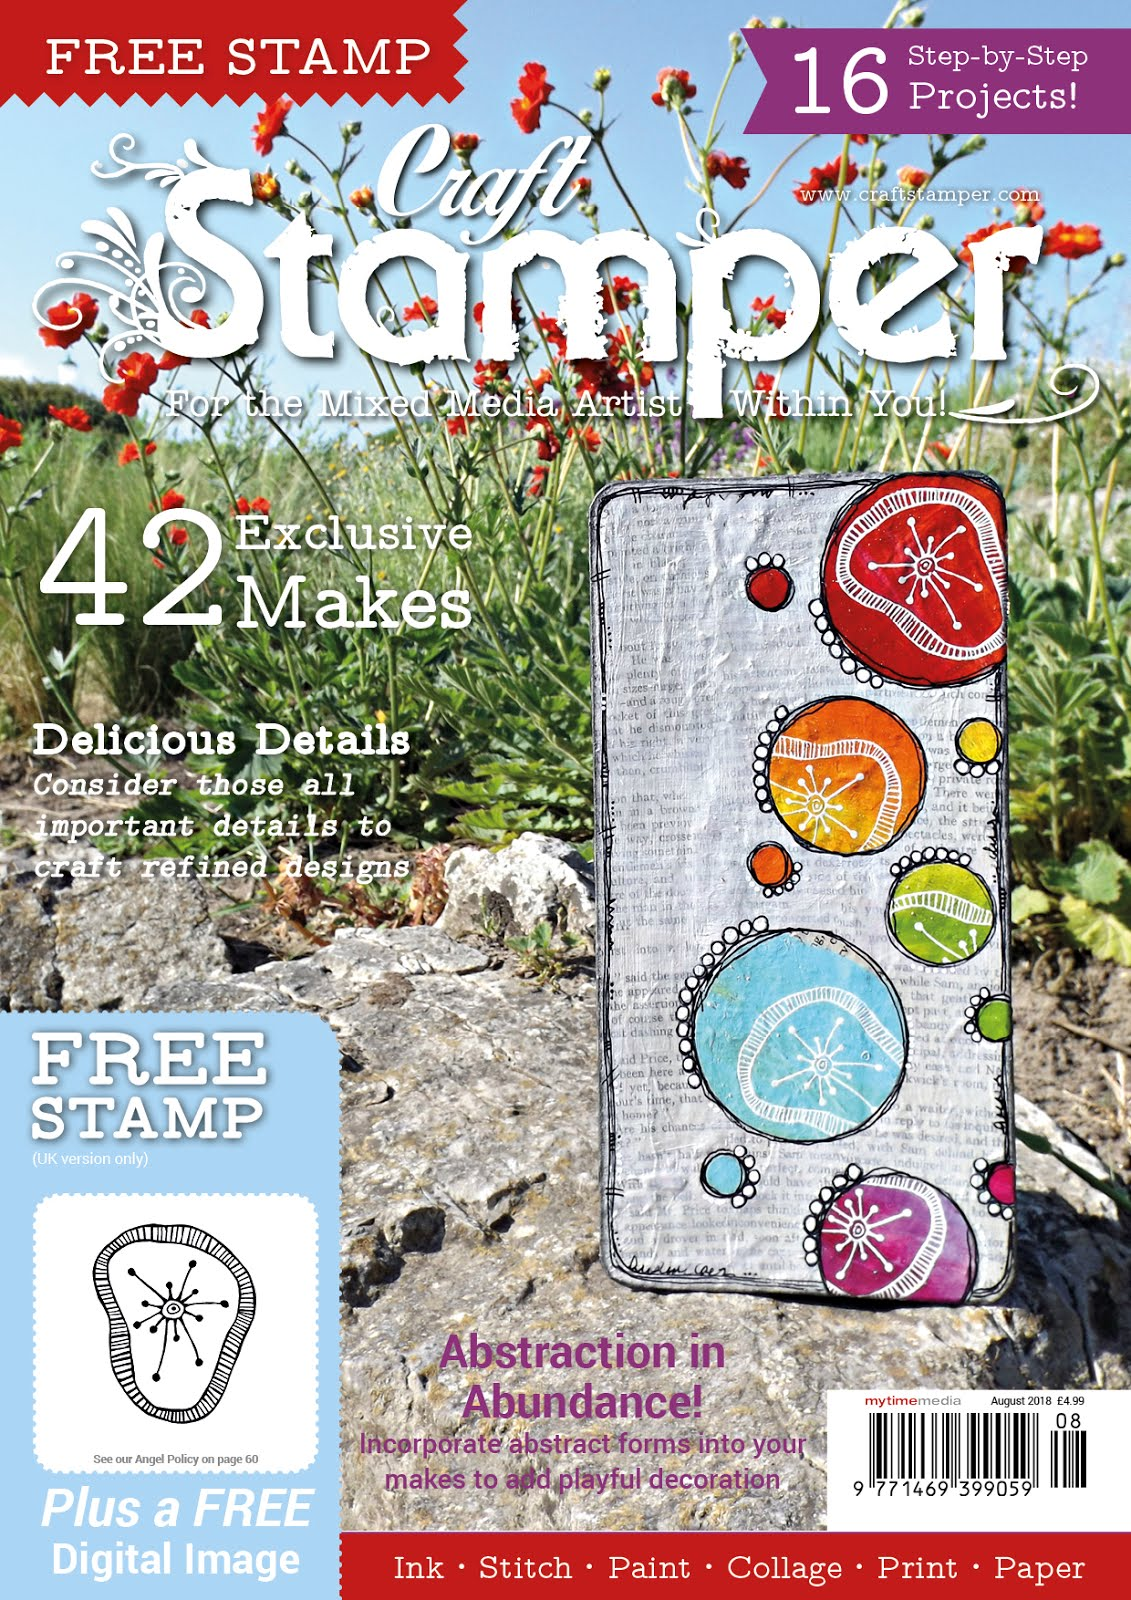 2 Mixed Media Cards Published in Craft Stamper Magazine, August 2018 Issue